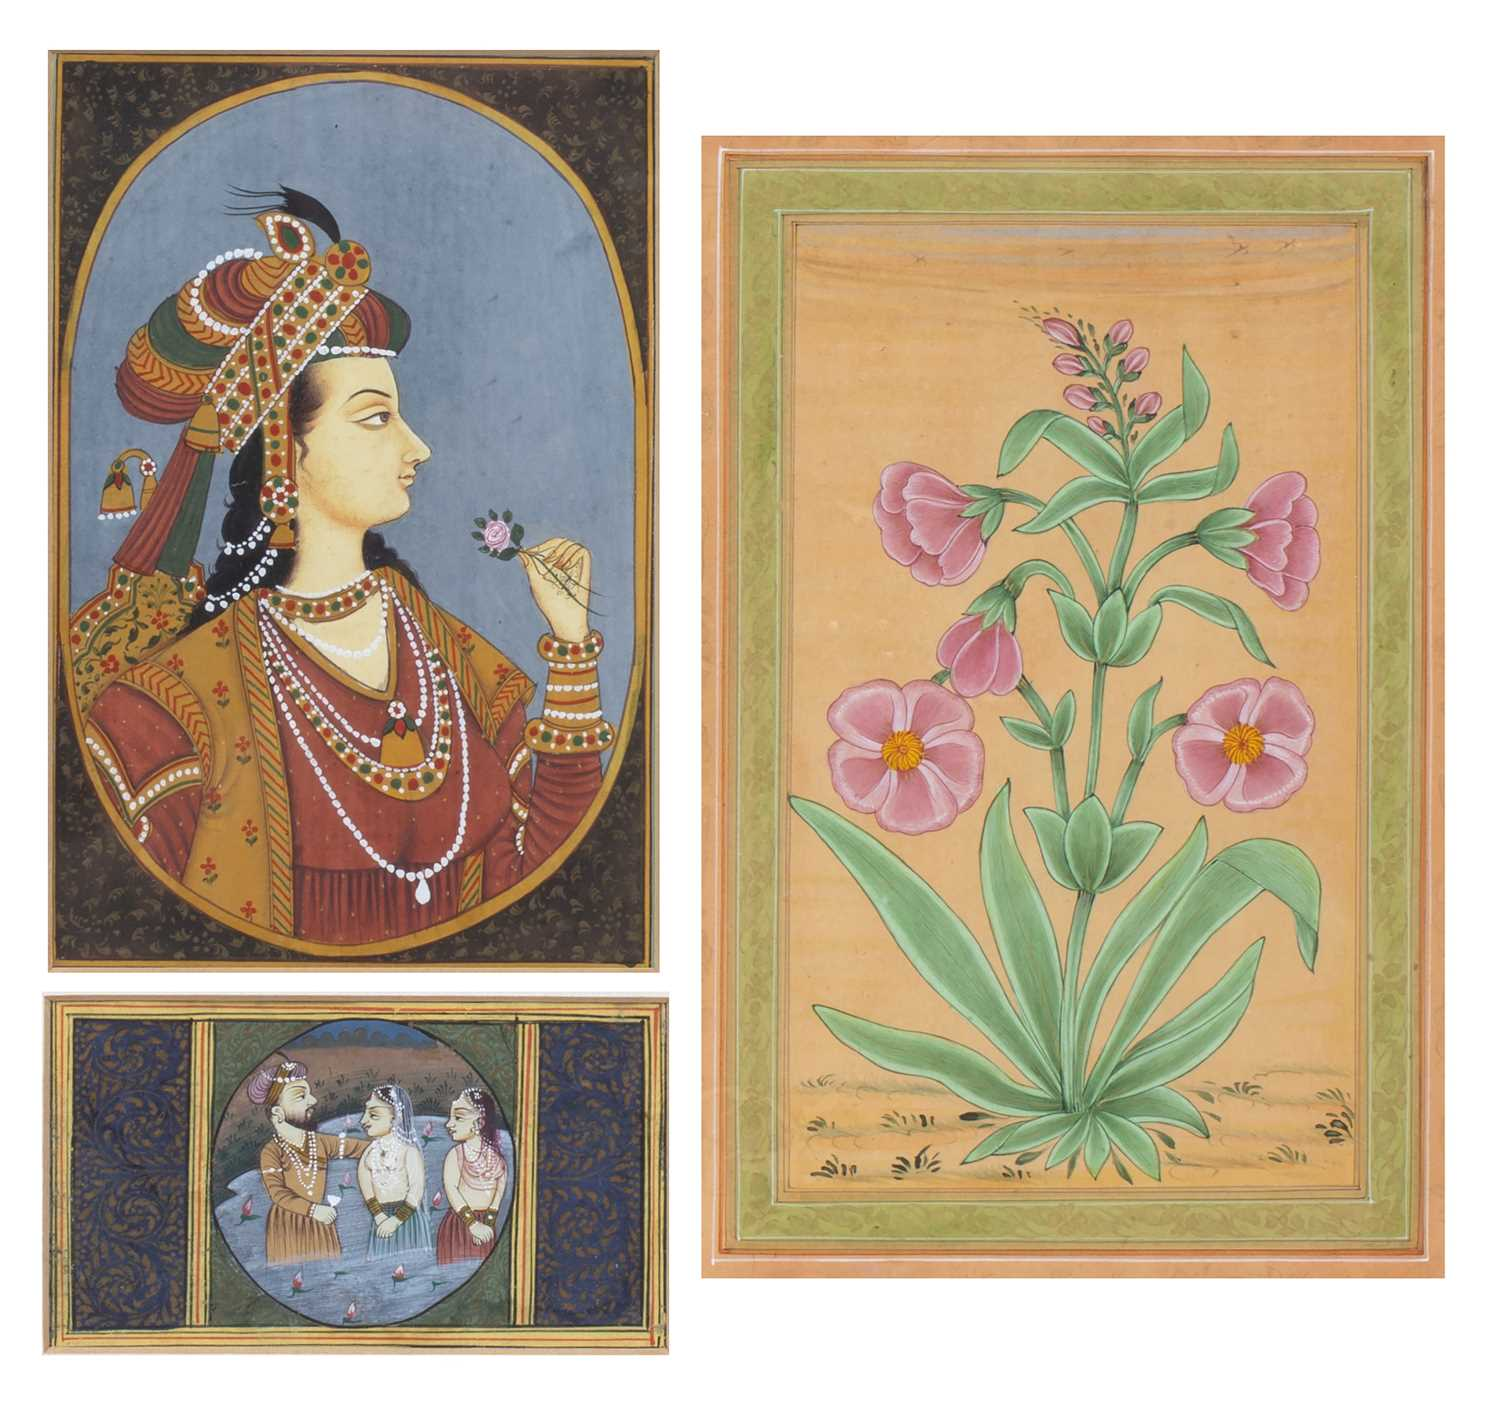 An Indian contemporary miniature portrait painting, 14.5 x 10cm, framed with a baptismal scene, 5